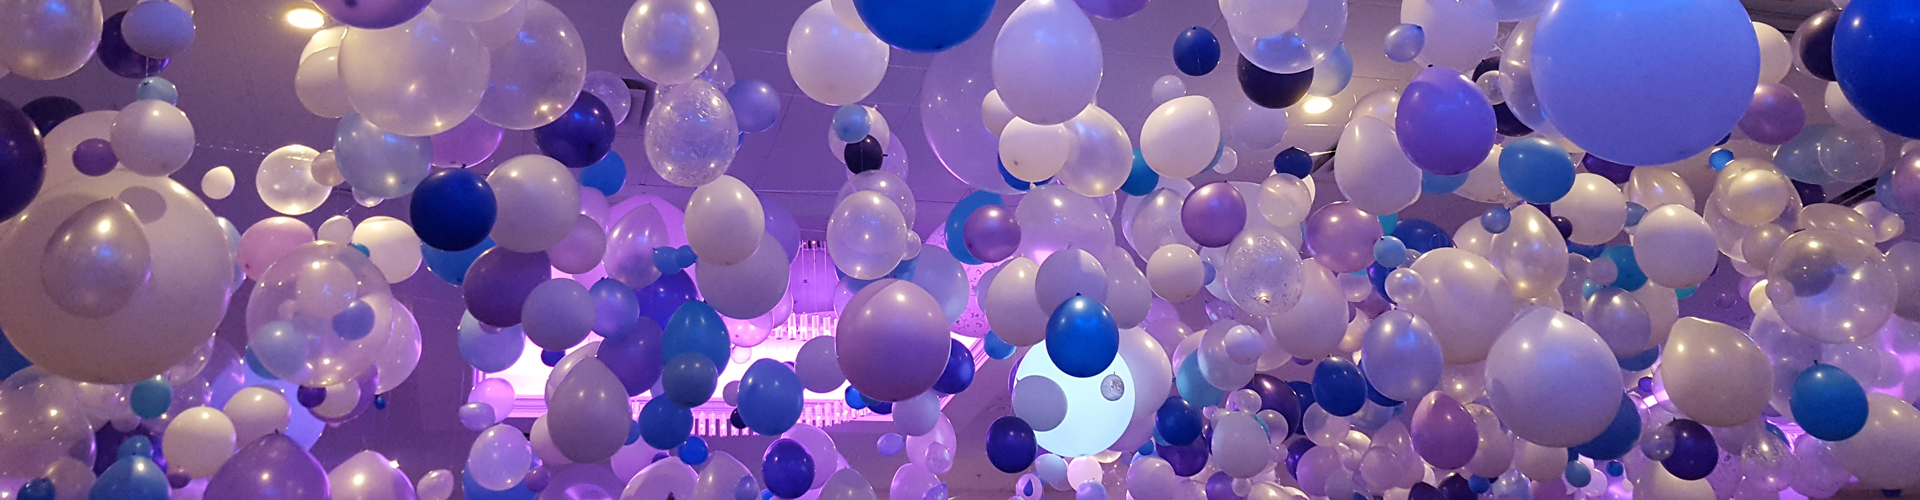 Ceiling Decor Float 2017 by Balloons by Tommy